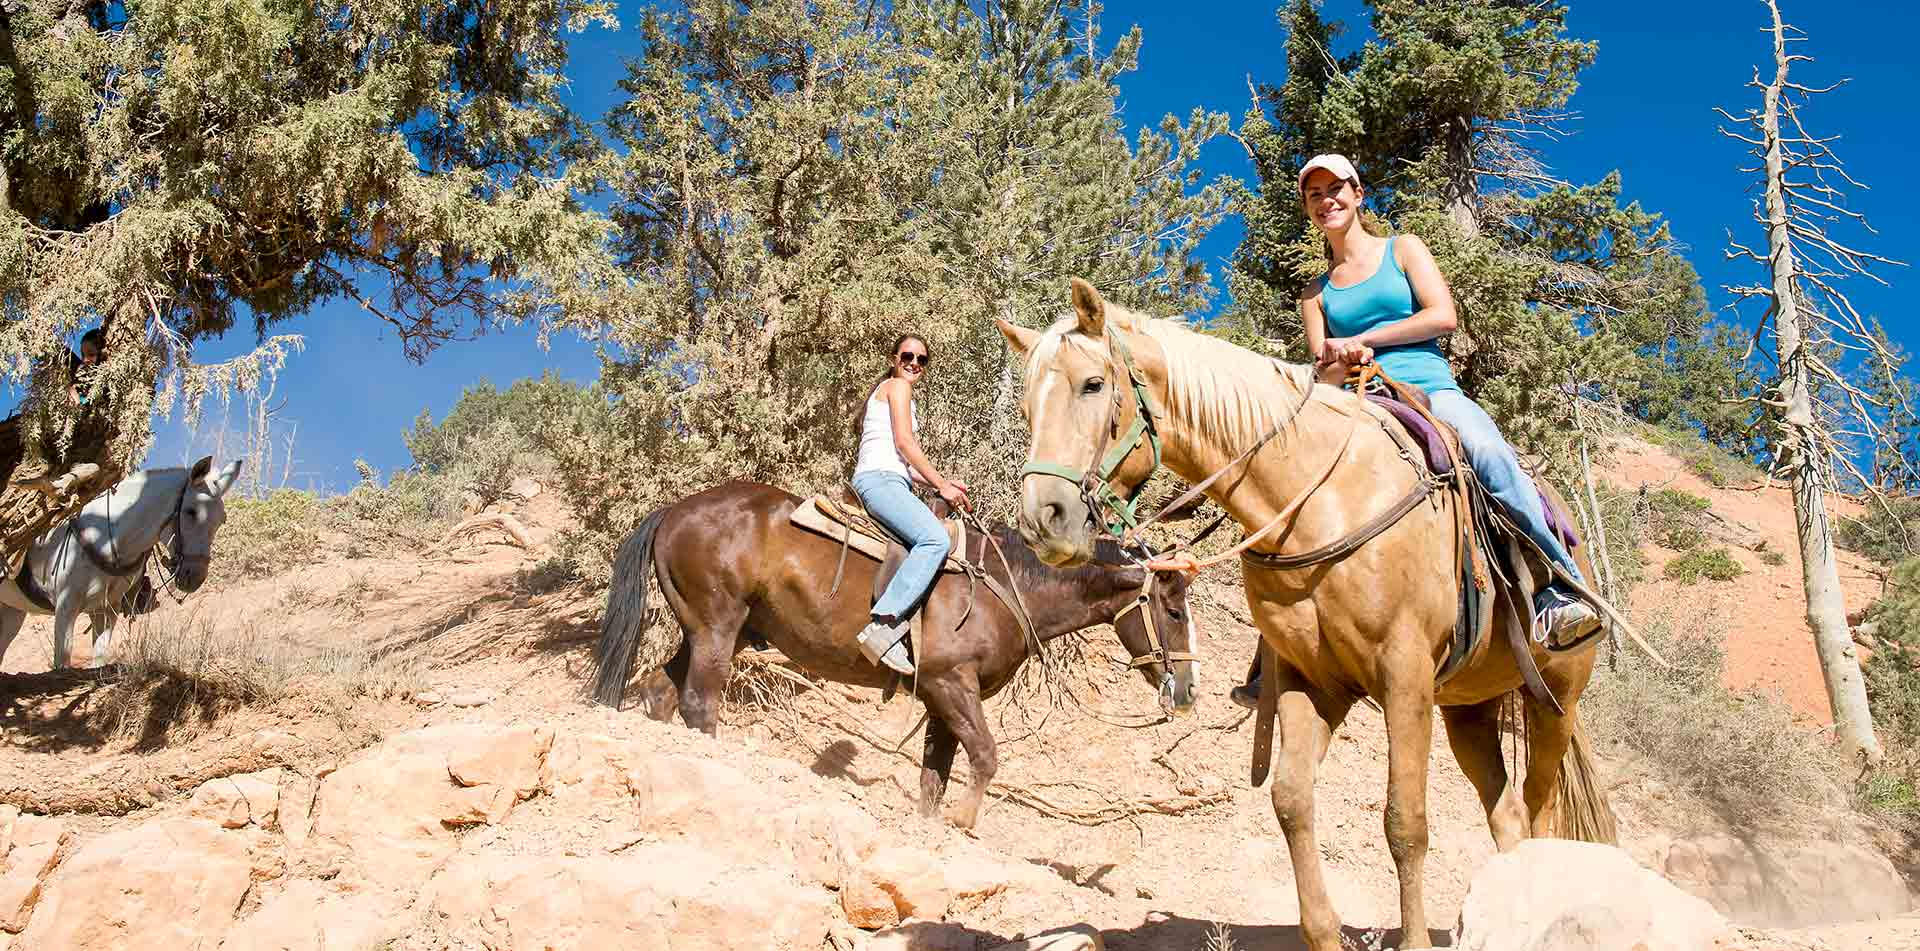 Horseback riding, Bryce Canyon